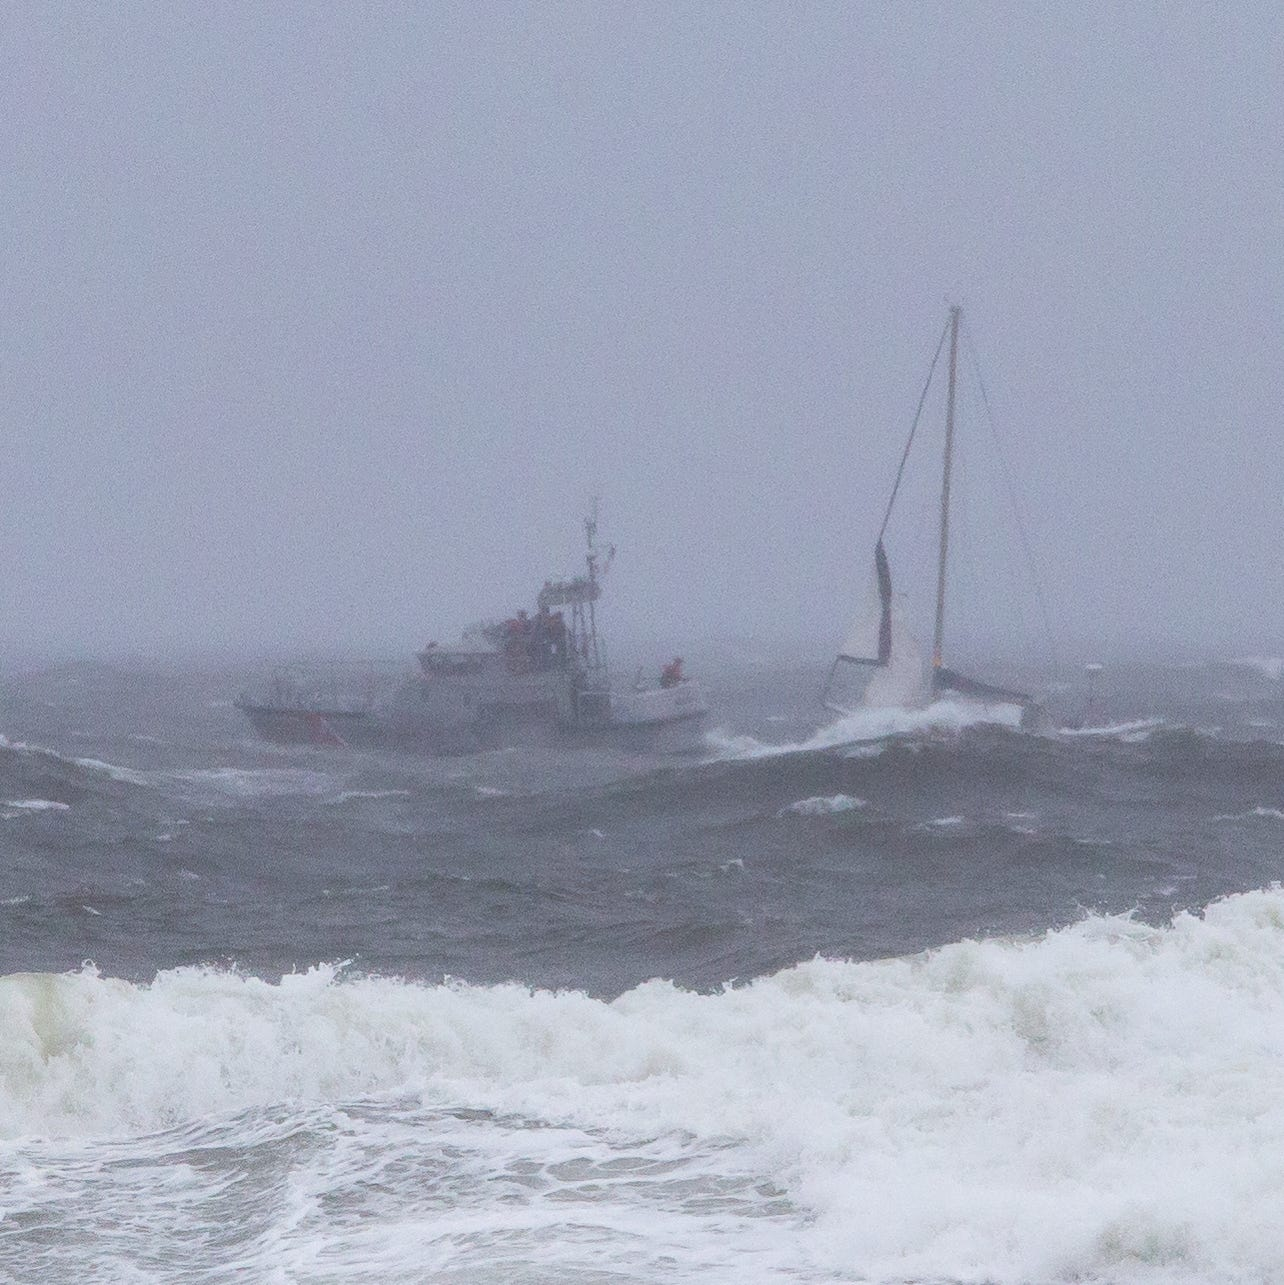 Bradley Beach sailboat in distress: USCG monitoring